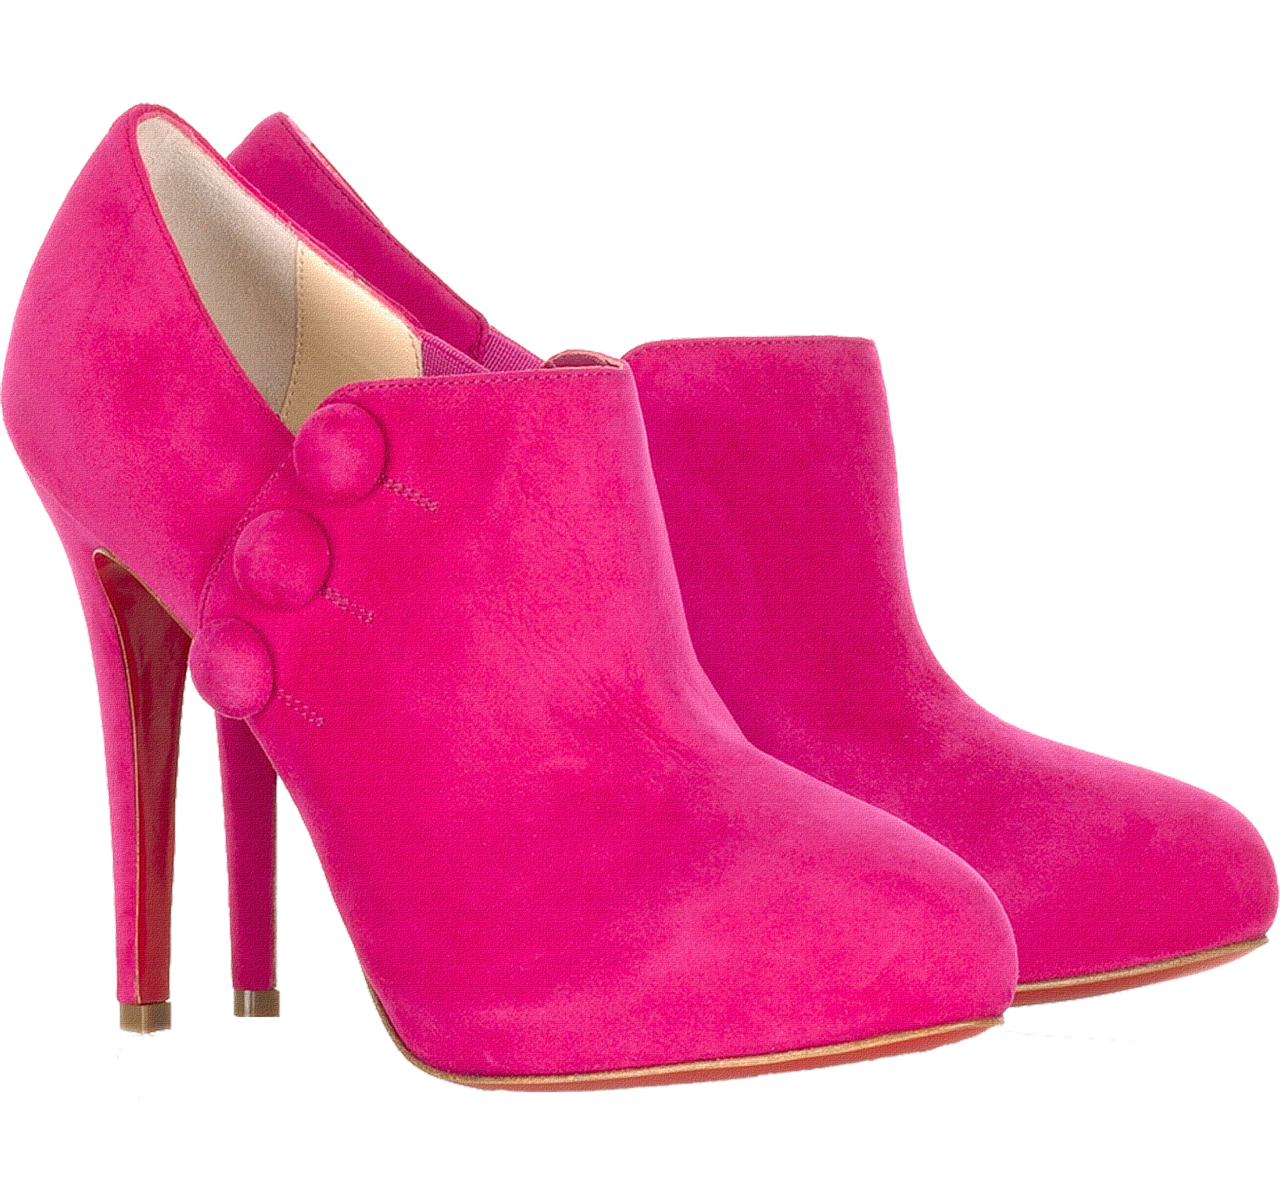 Pink shoes png. Women picture web icons